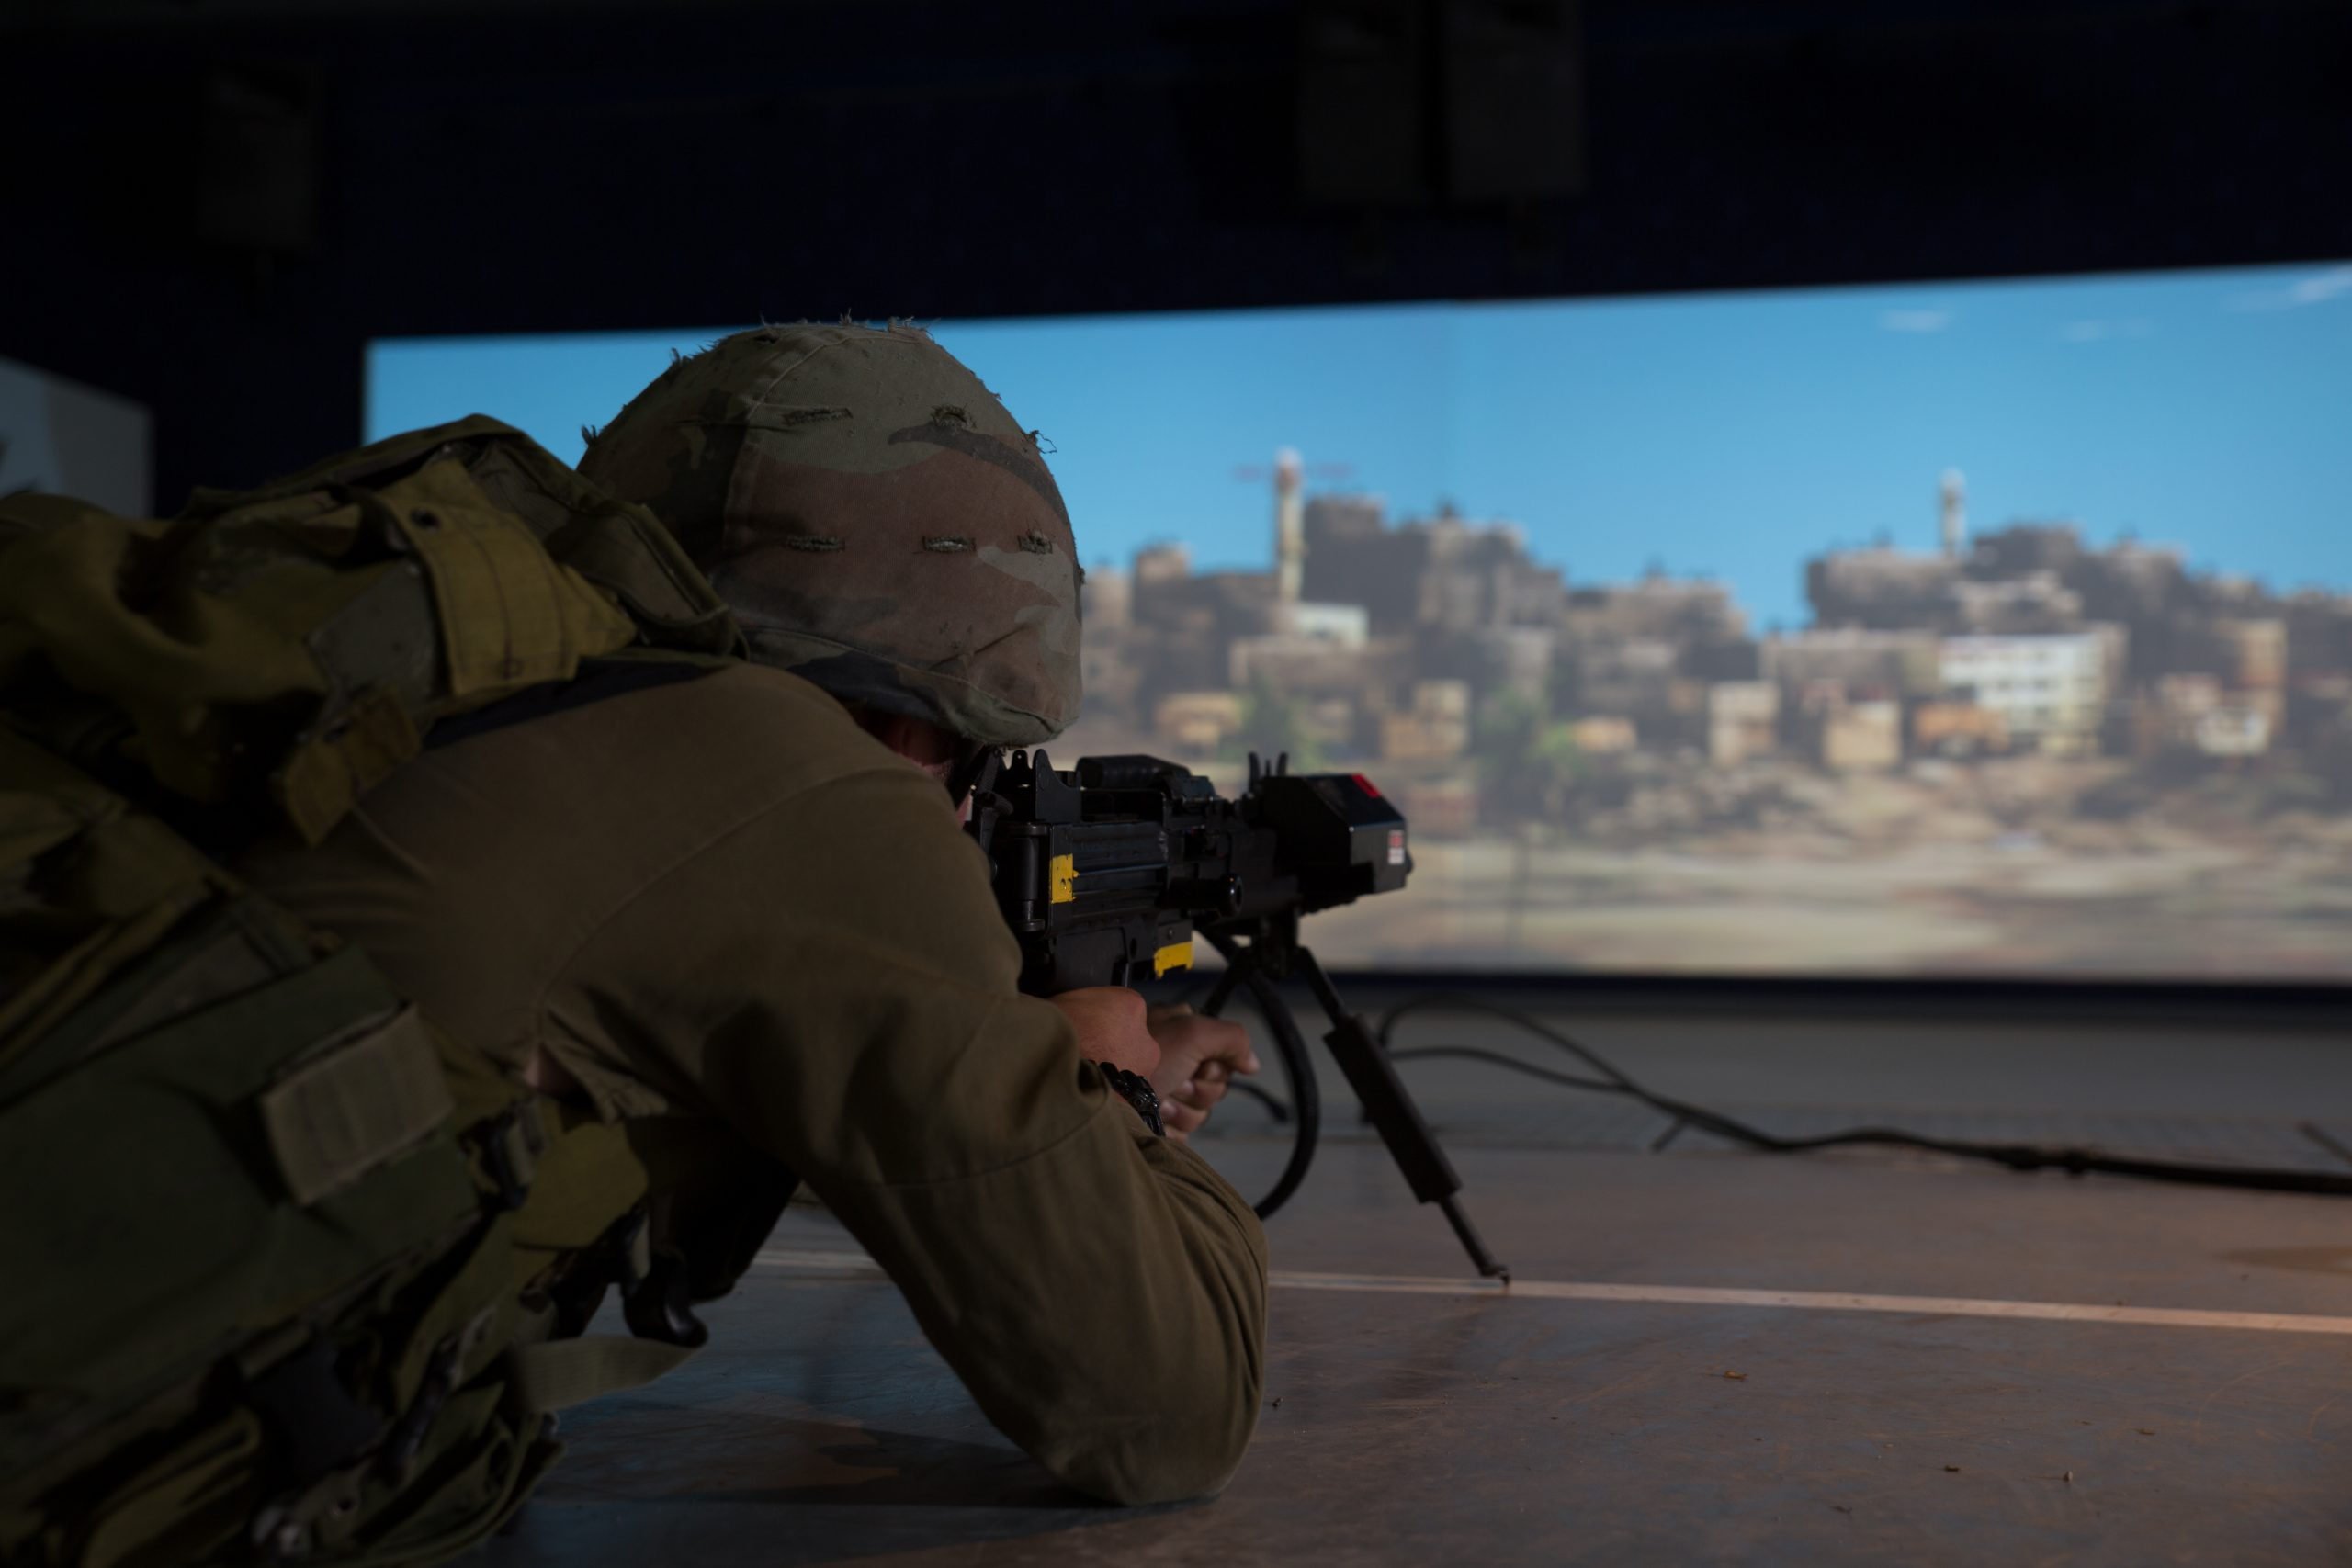 <p>The advanced tactical training enables performance of complex scenarios for individual and group level training with a high level of proficiency</p>